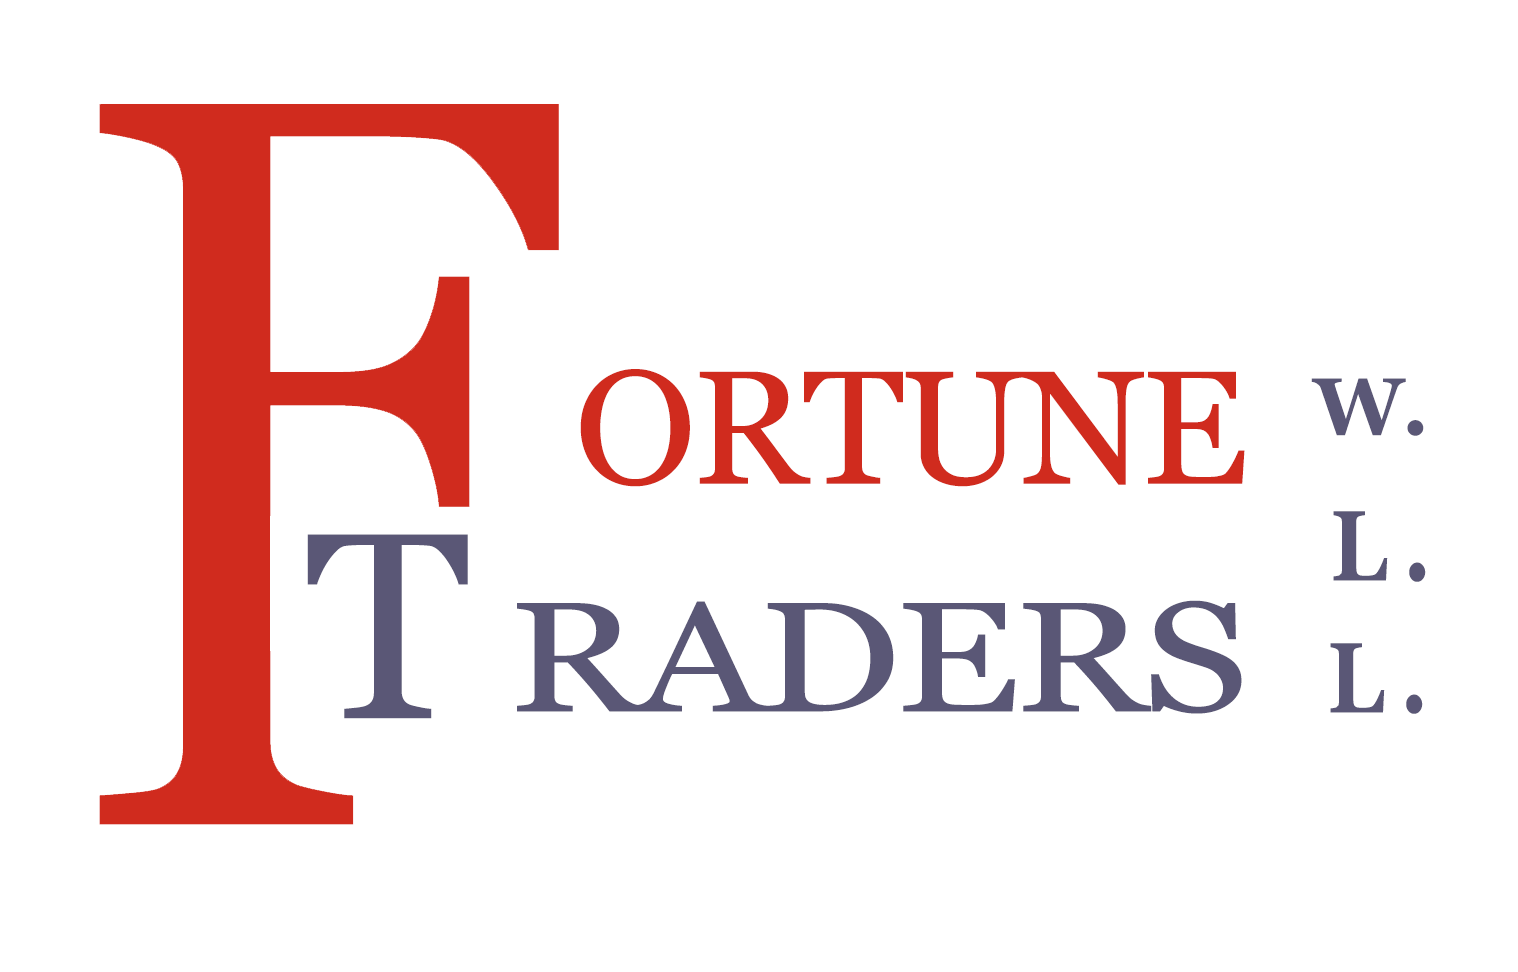 FORTUNE TRADERS WLL